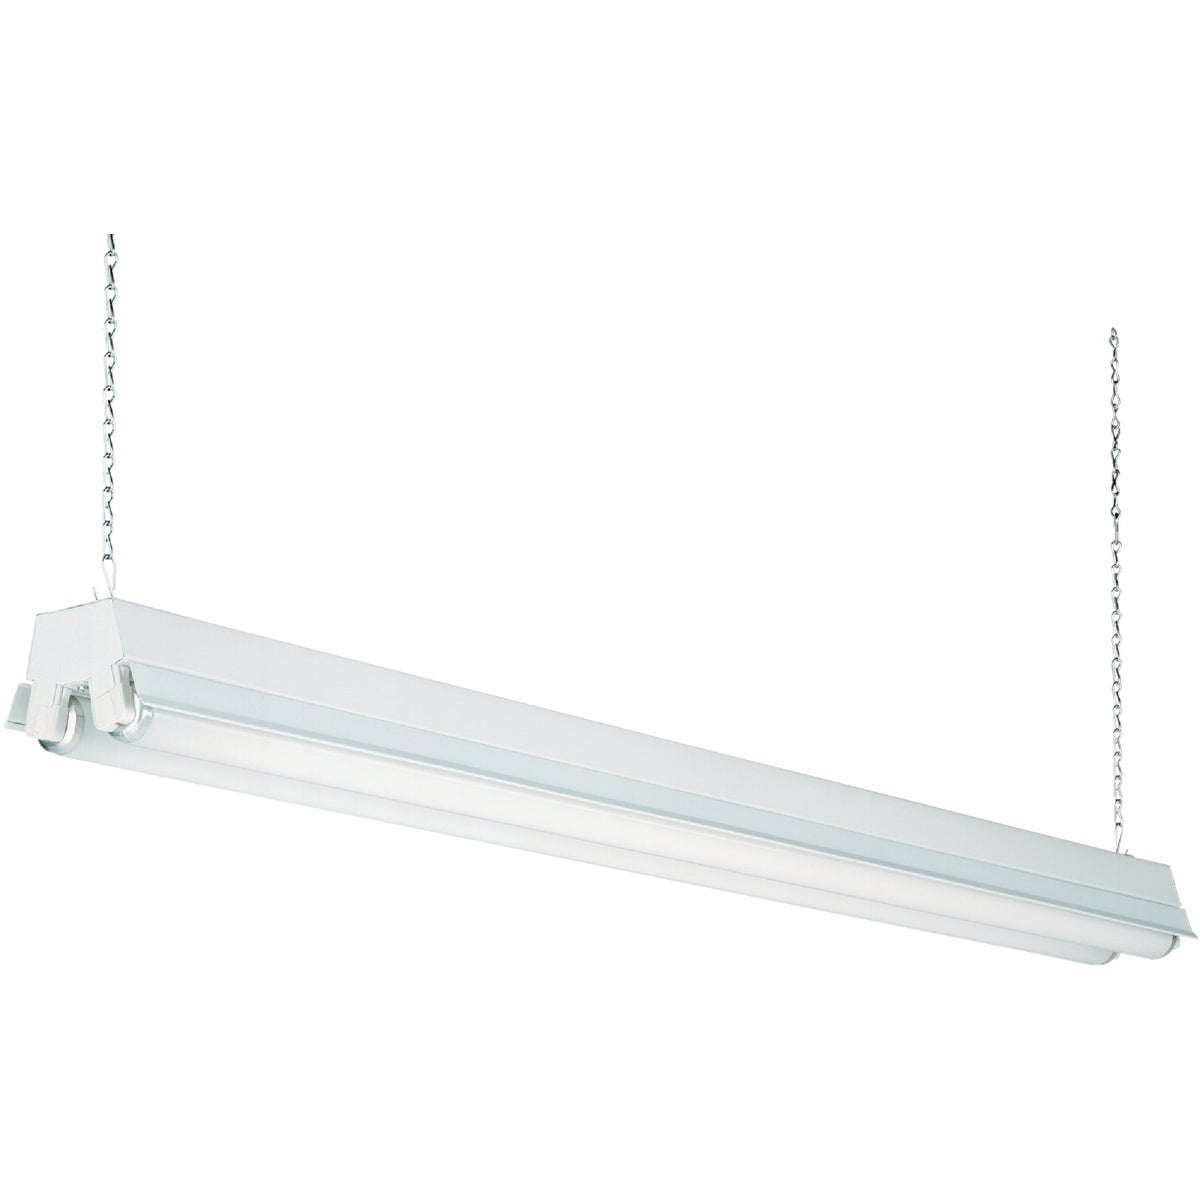 4' T12 2BULB SHOPLIGHT